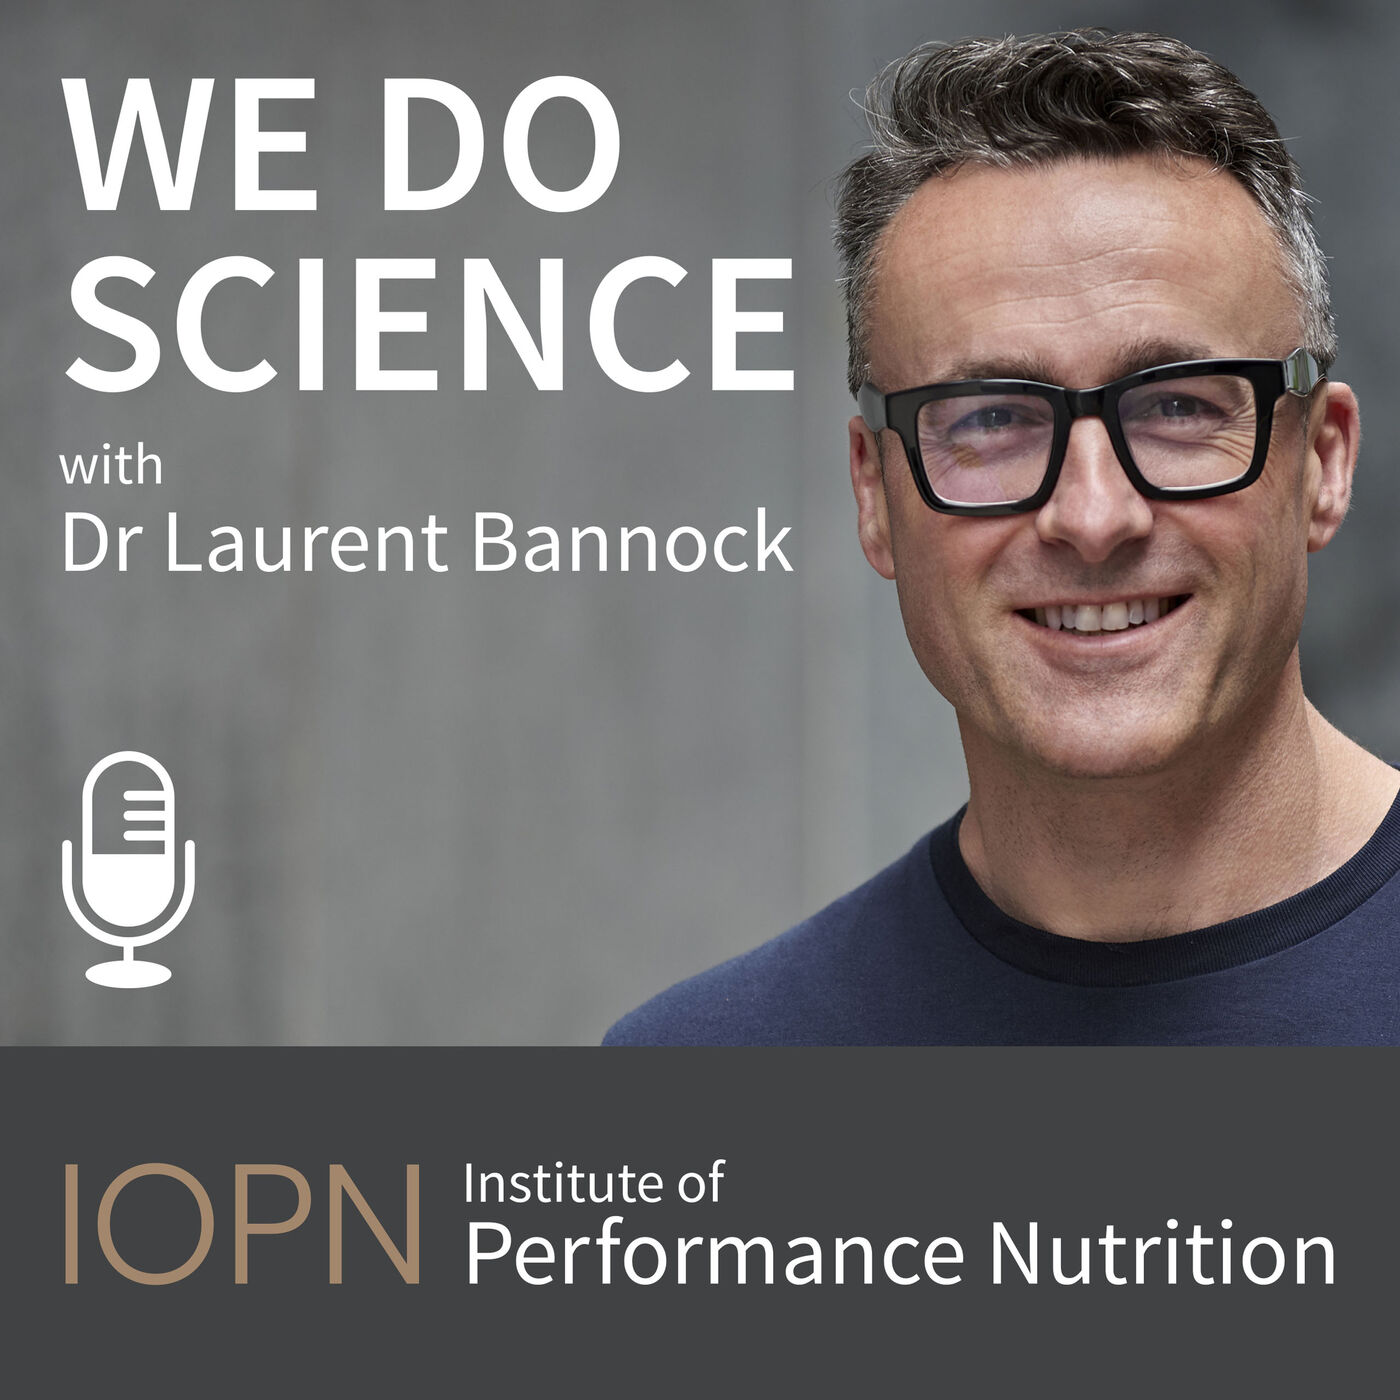 Episode 51 - 'Carbohydrate Availability & Training Adaptation' with Professor John Hawley